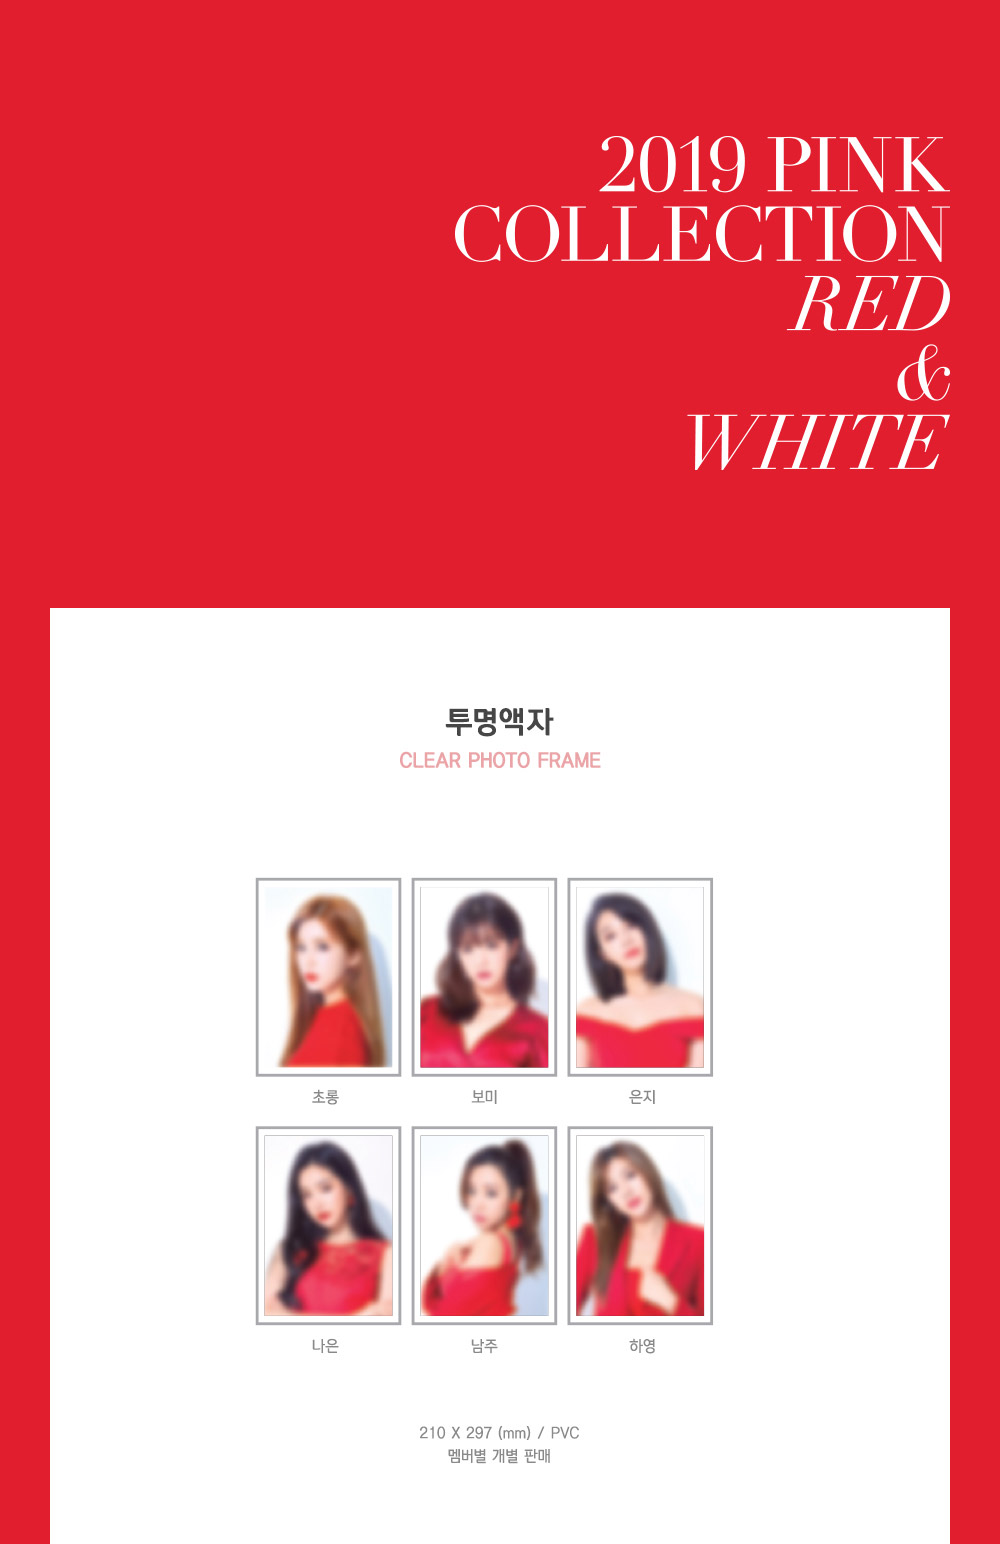 apink_pink_collection_frame-1